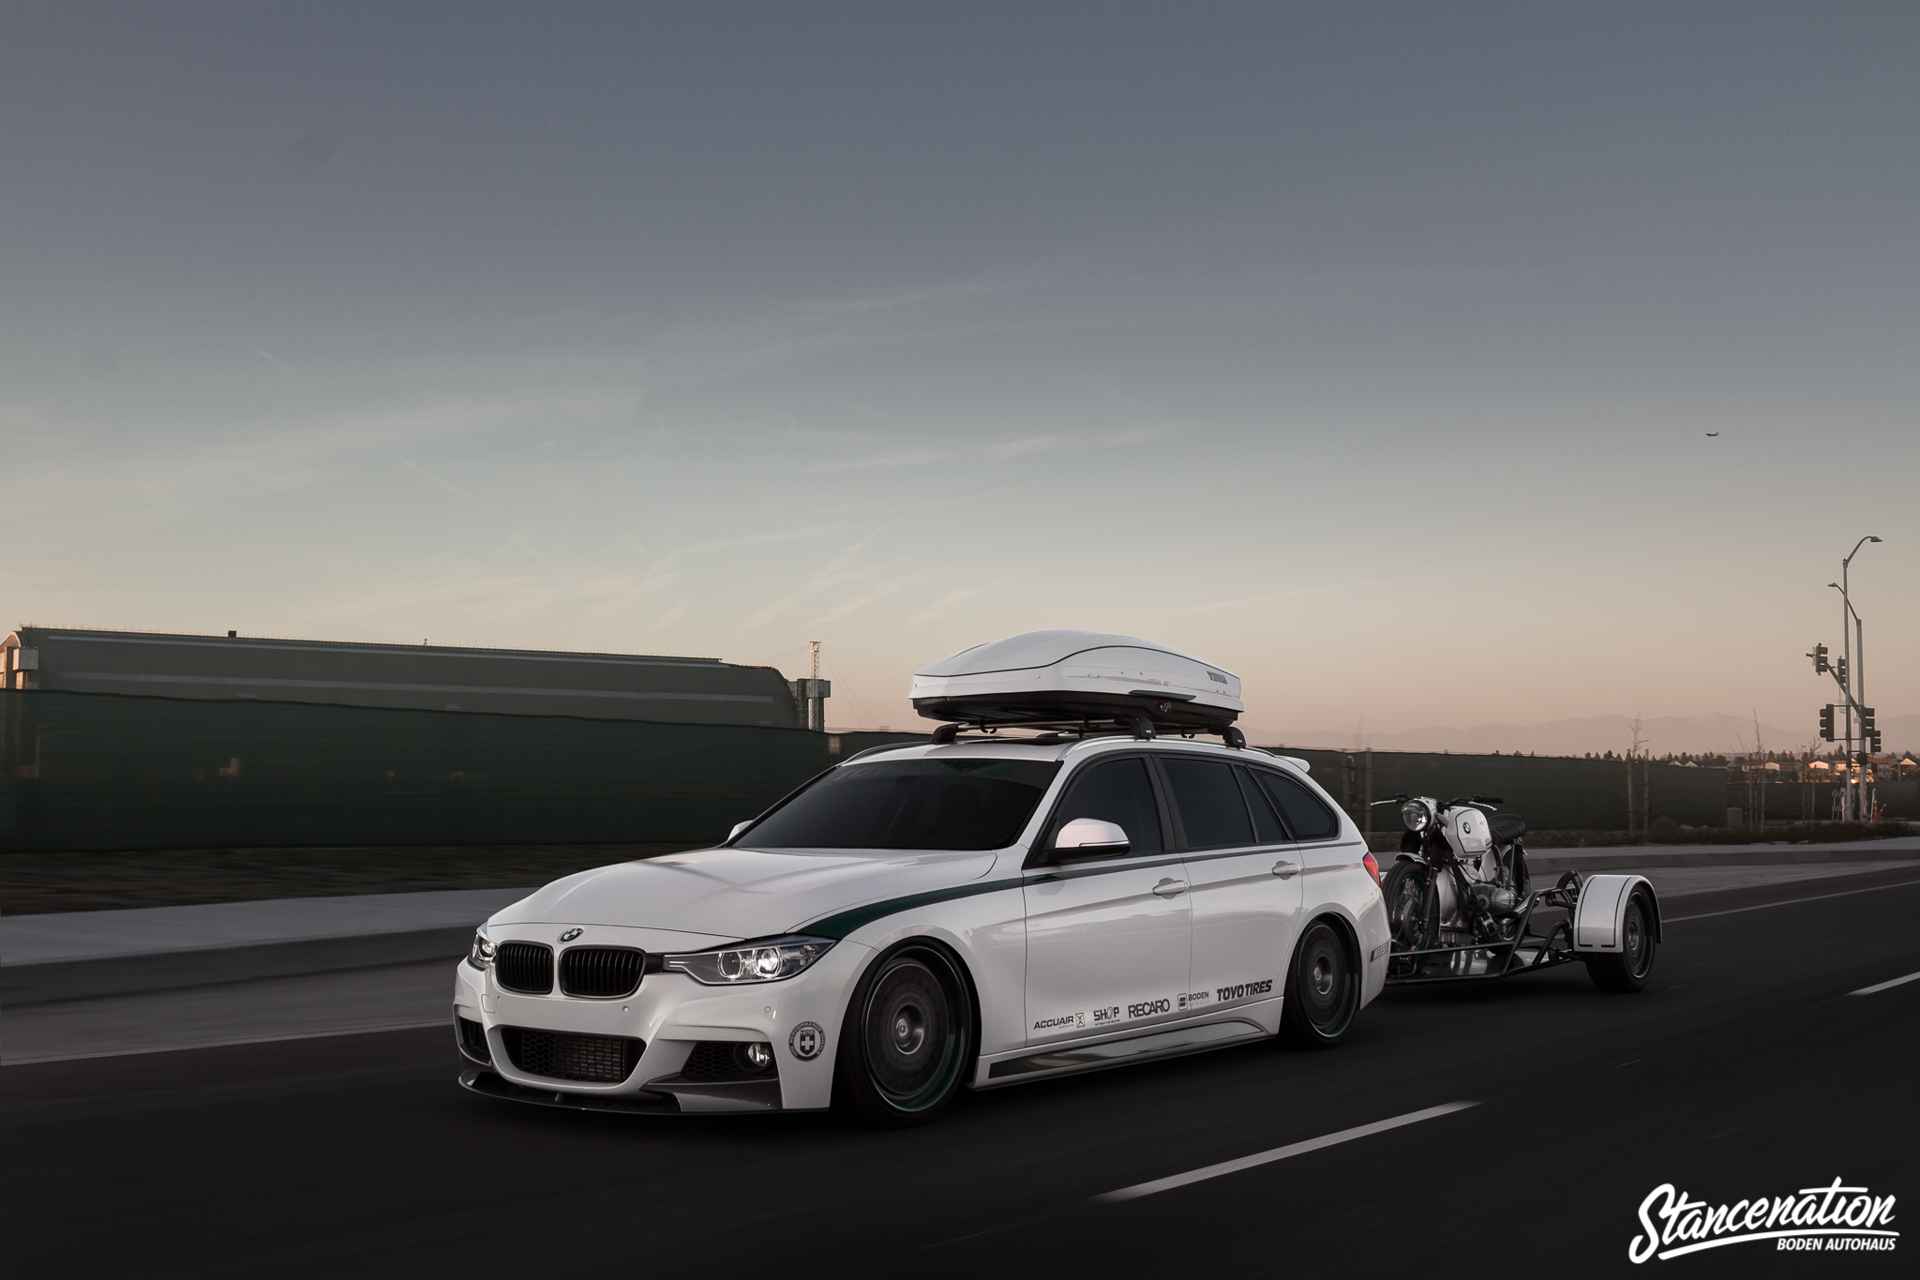 Vmr v703 bmw f31 bmw f31 wagon for Boden autohaus x5